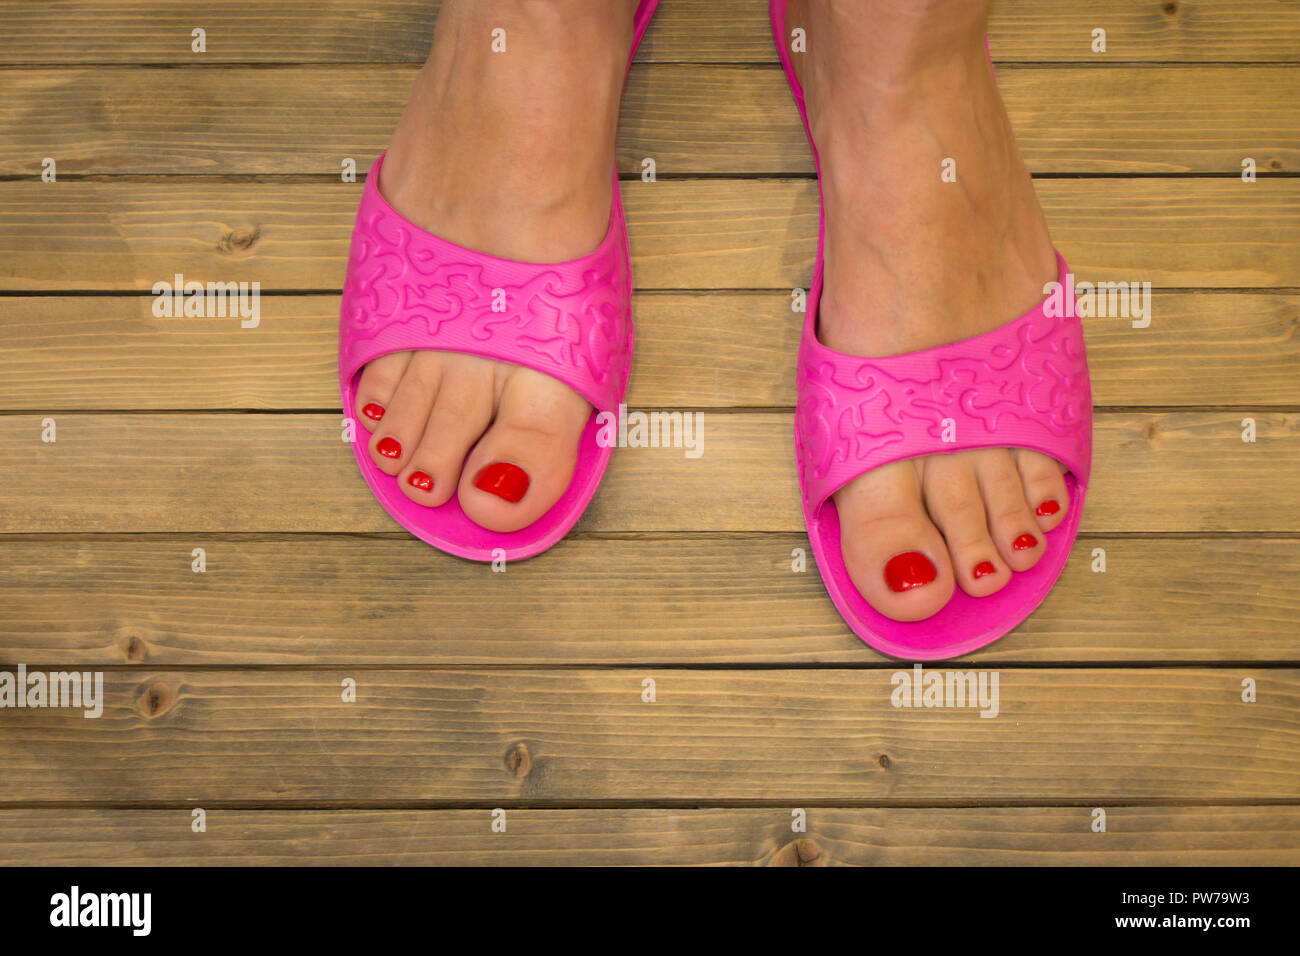 Female feet in slippers on wooden floor or background - Stock Image